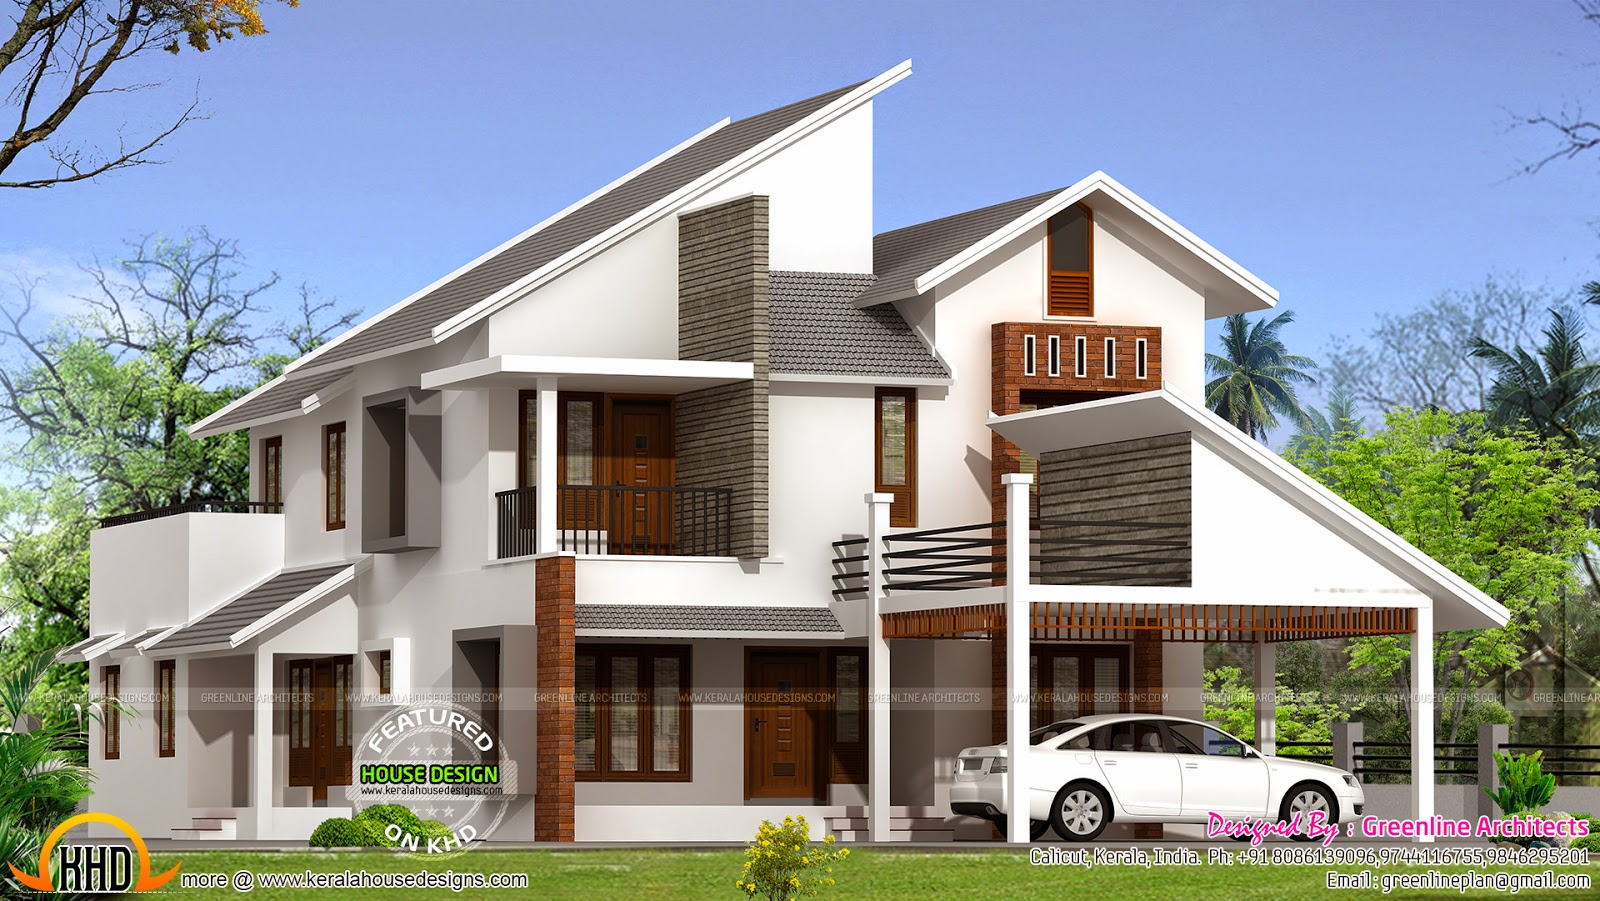 New modern house plan kerala home design and floor plans for Home plan ideas